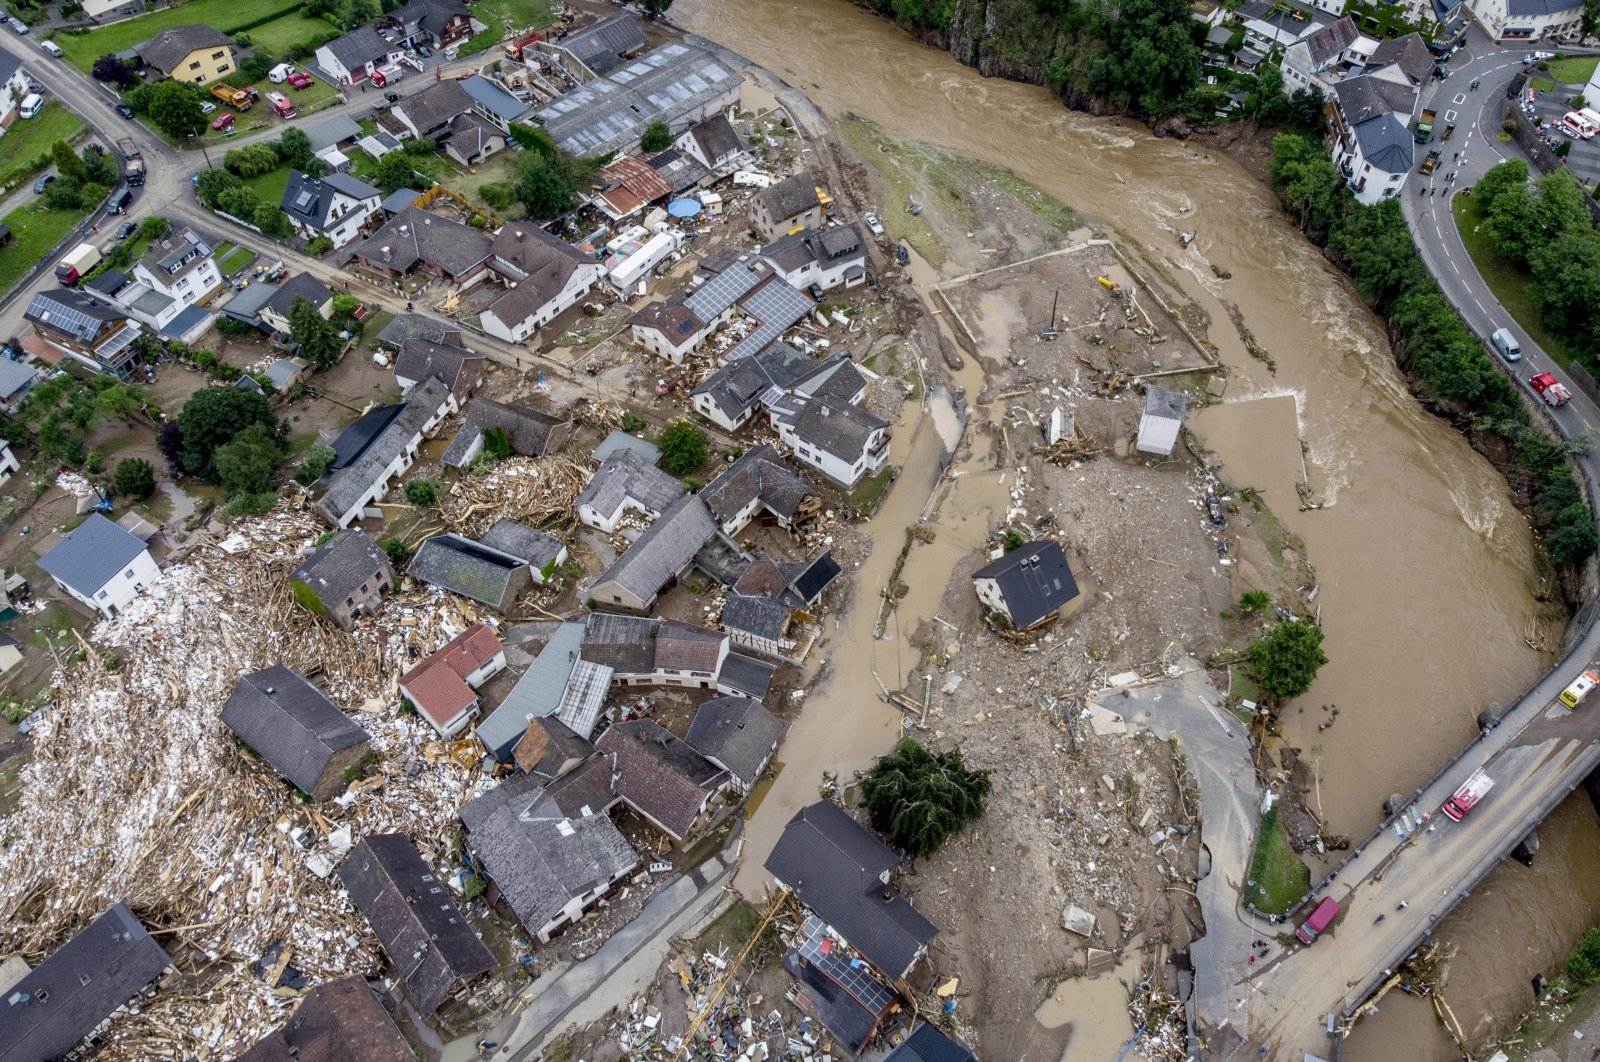 In this July 15, 2021 file photo destroyed houses are seen close to the Ahr river in Schuld, Germany. (AP Photo)